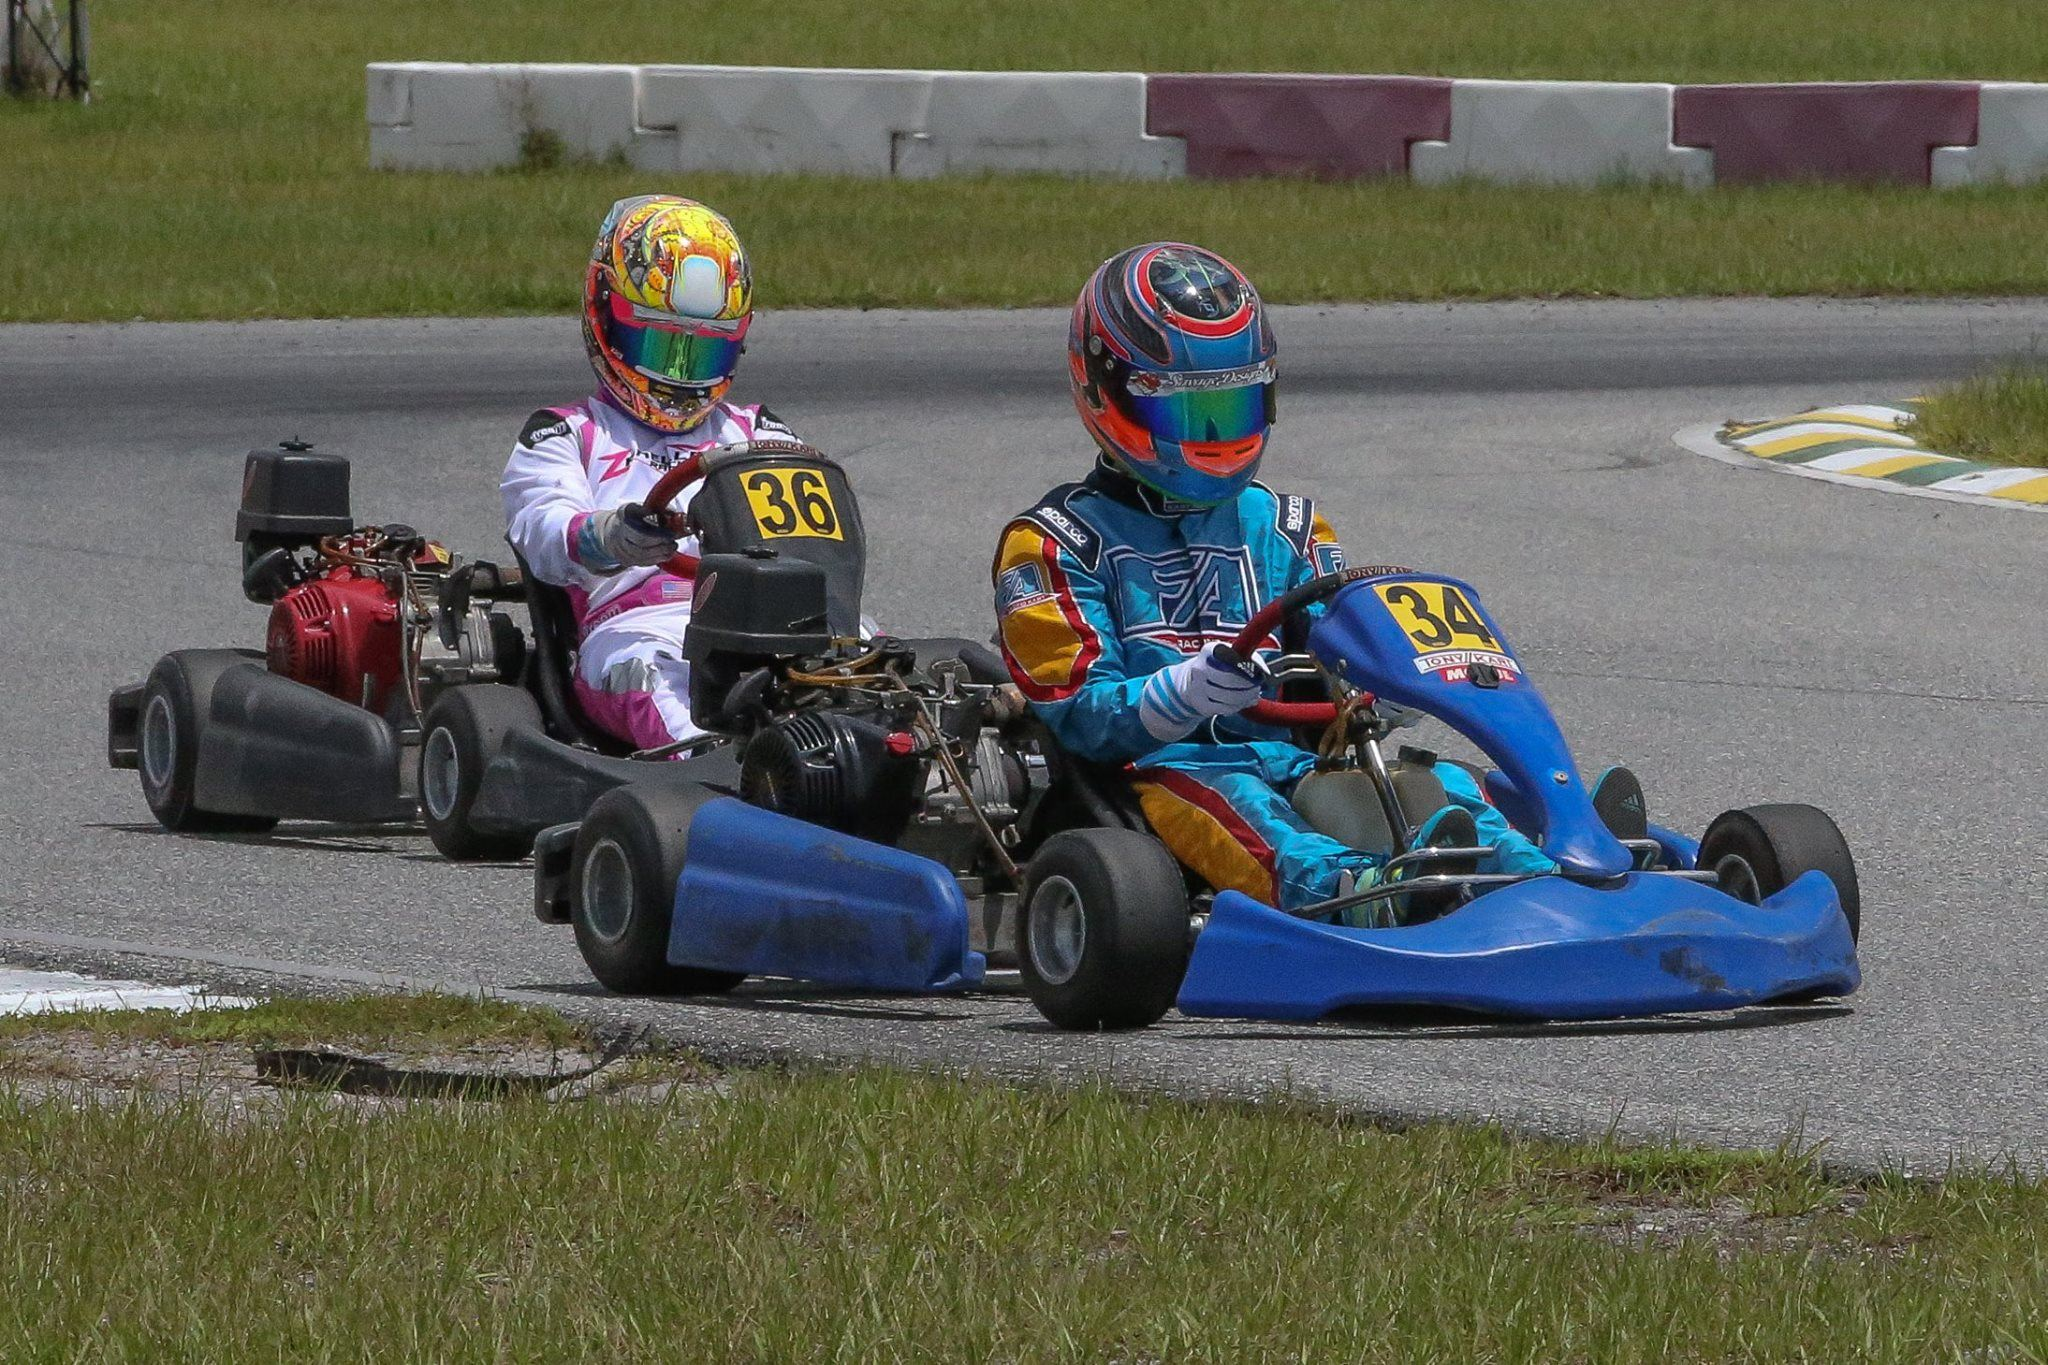 SPEEDY KARTS – Orlando Kart Center